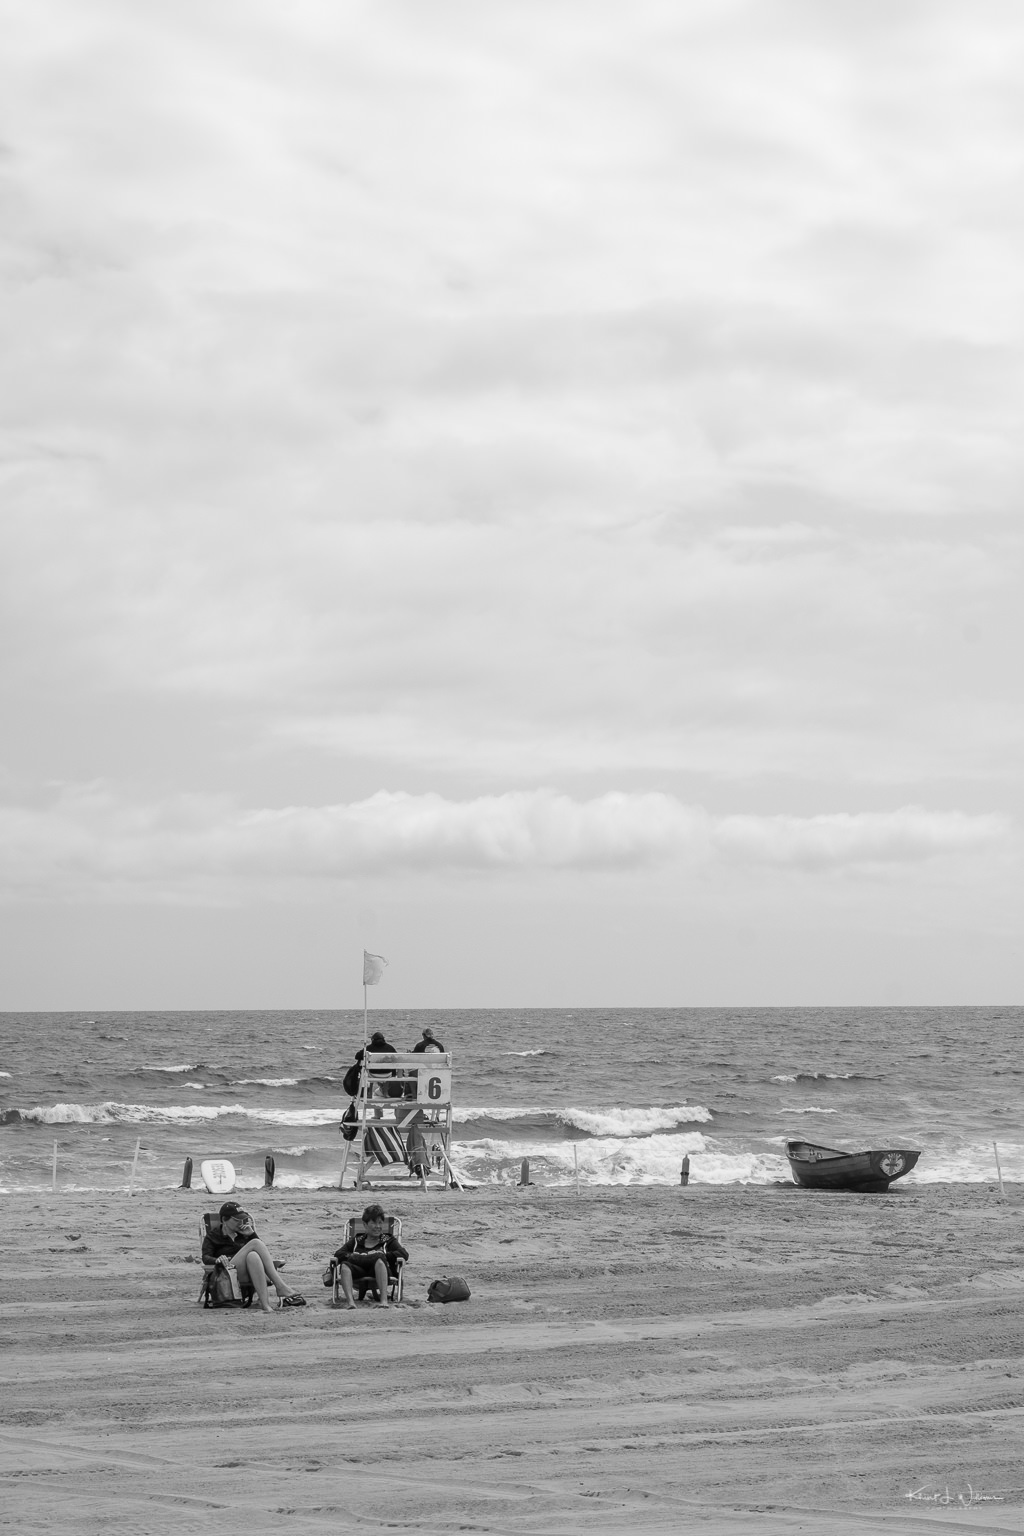 lifeguard and life boat on beach